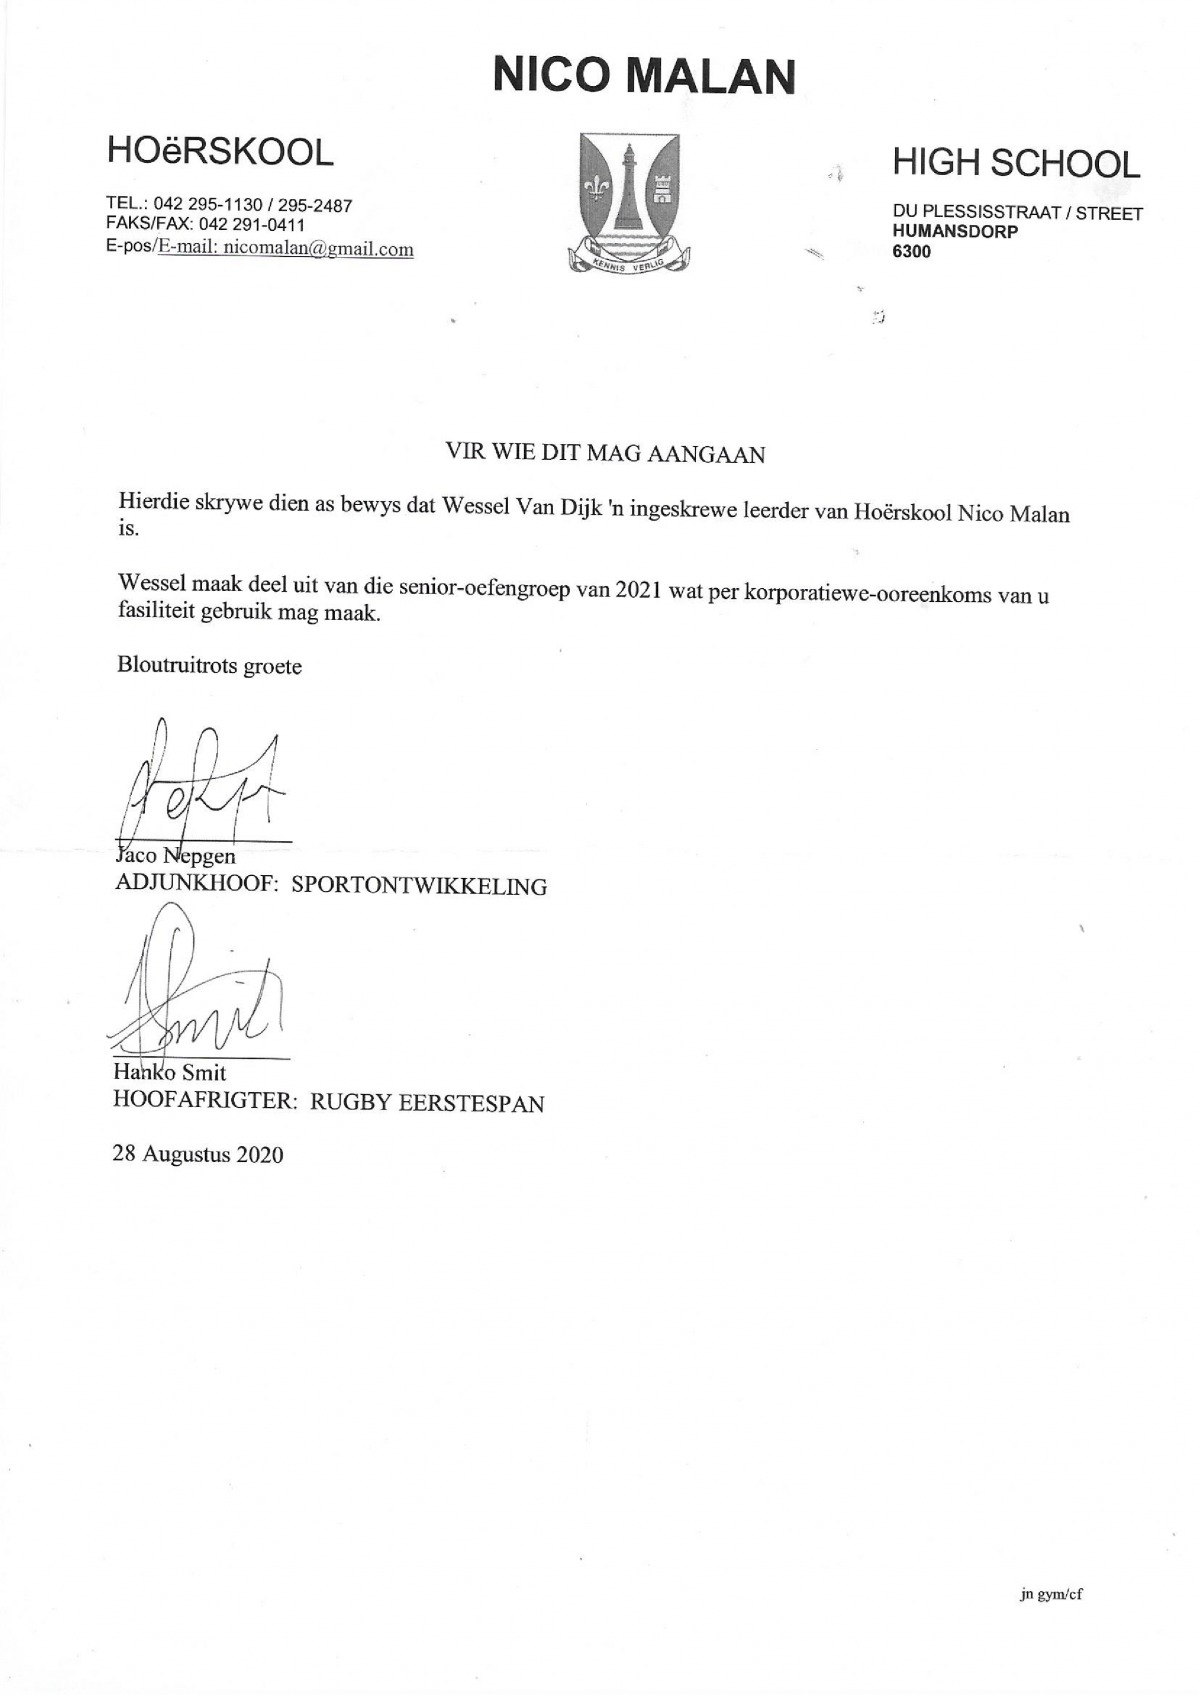 A letter stating that Wessel forms part of a senior training group for 2021